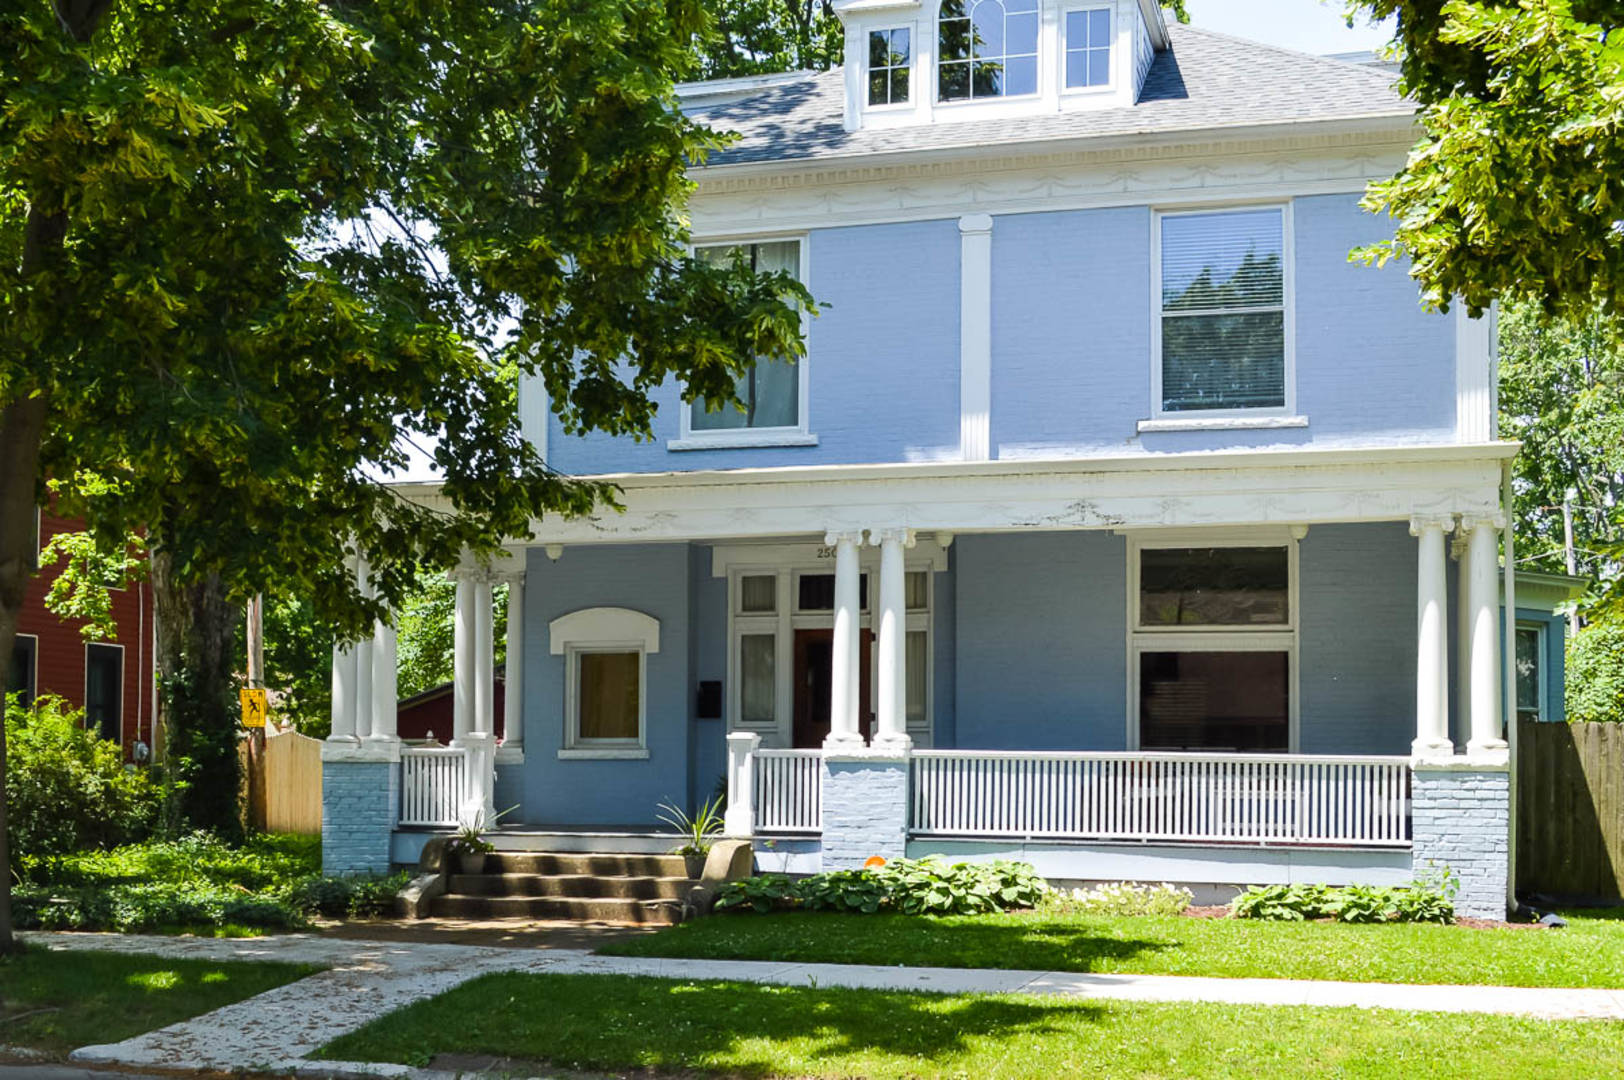 250 N. Home Ave. Franklin, IN 46131